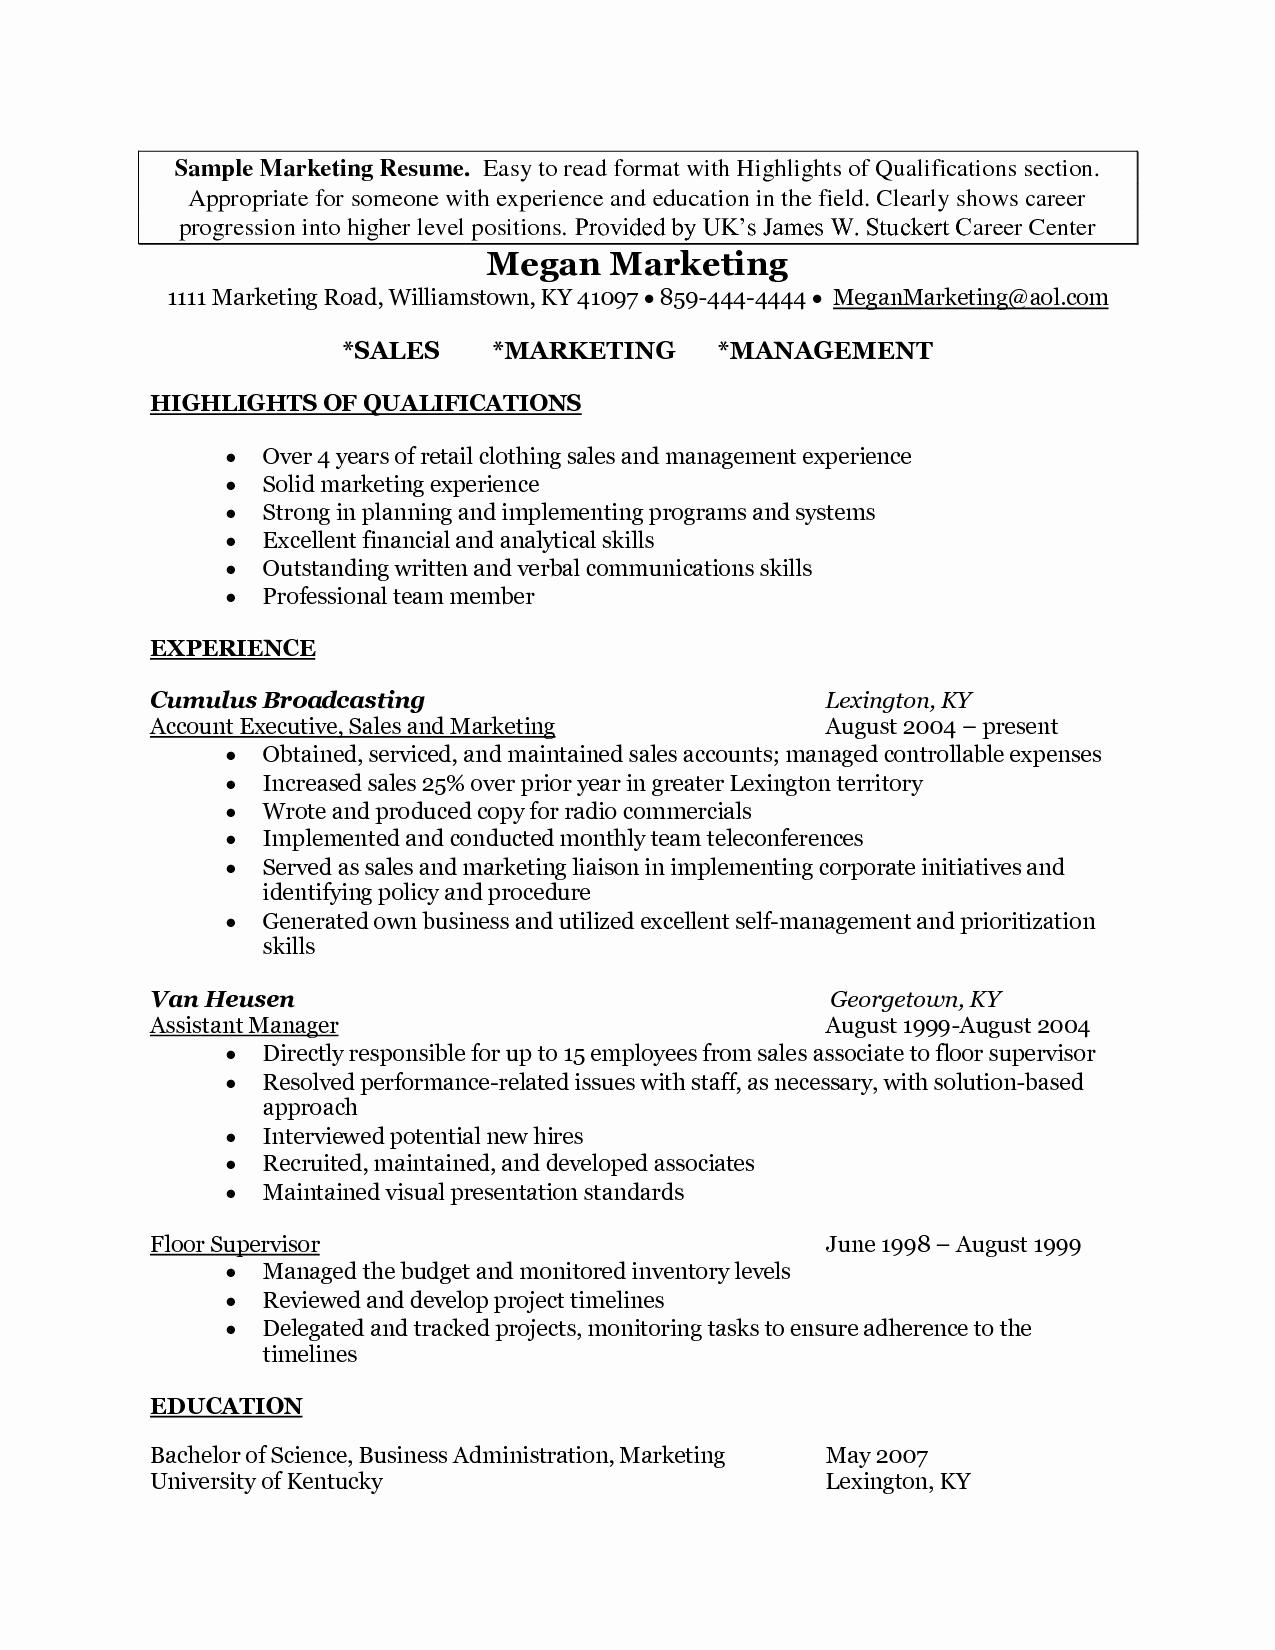 Resume Summary Ideas - Example Resume Summary Fresh Inspirational Grapher Resume Sample